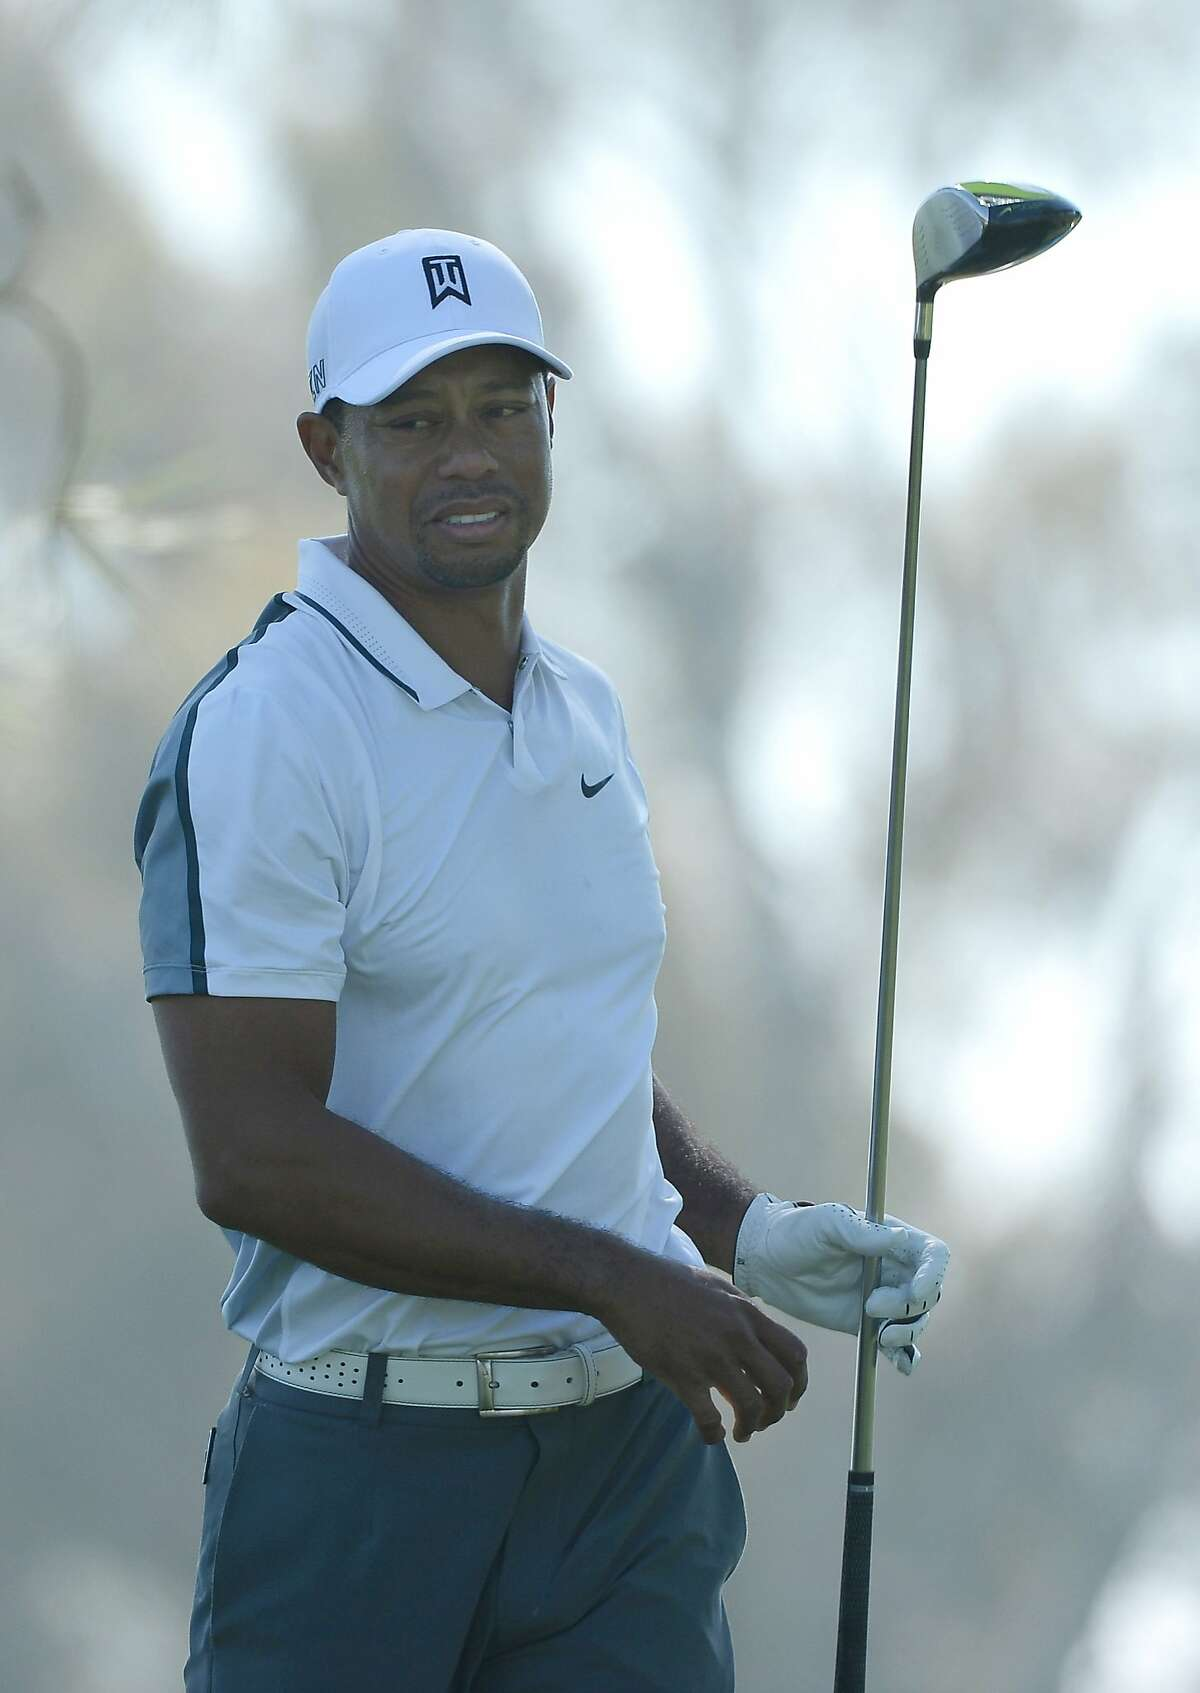 LA JOLLA, CA - FEBRUARY 05: Tiger Woods reacts after hitting his tee shot into the rough on the 11th hole of the north course during the first round of the Farmers Insurance Open at Torrey Pines Golf Course on February 5, 2015 in La Jolla, California. (Photo by Donald Miralle/Getty Images)